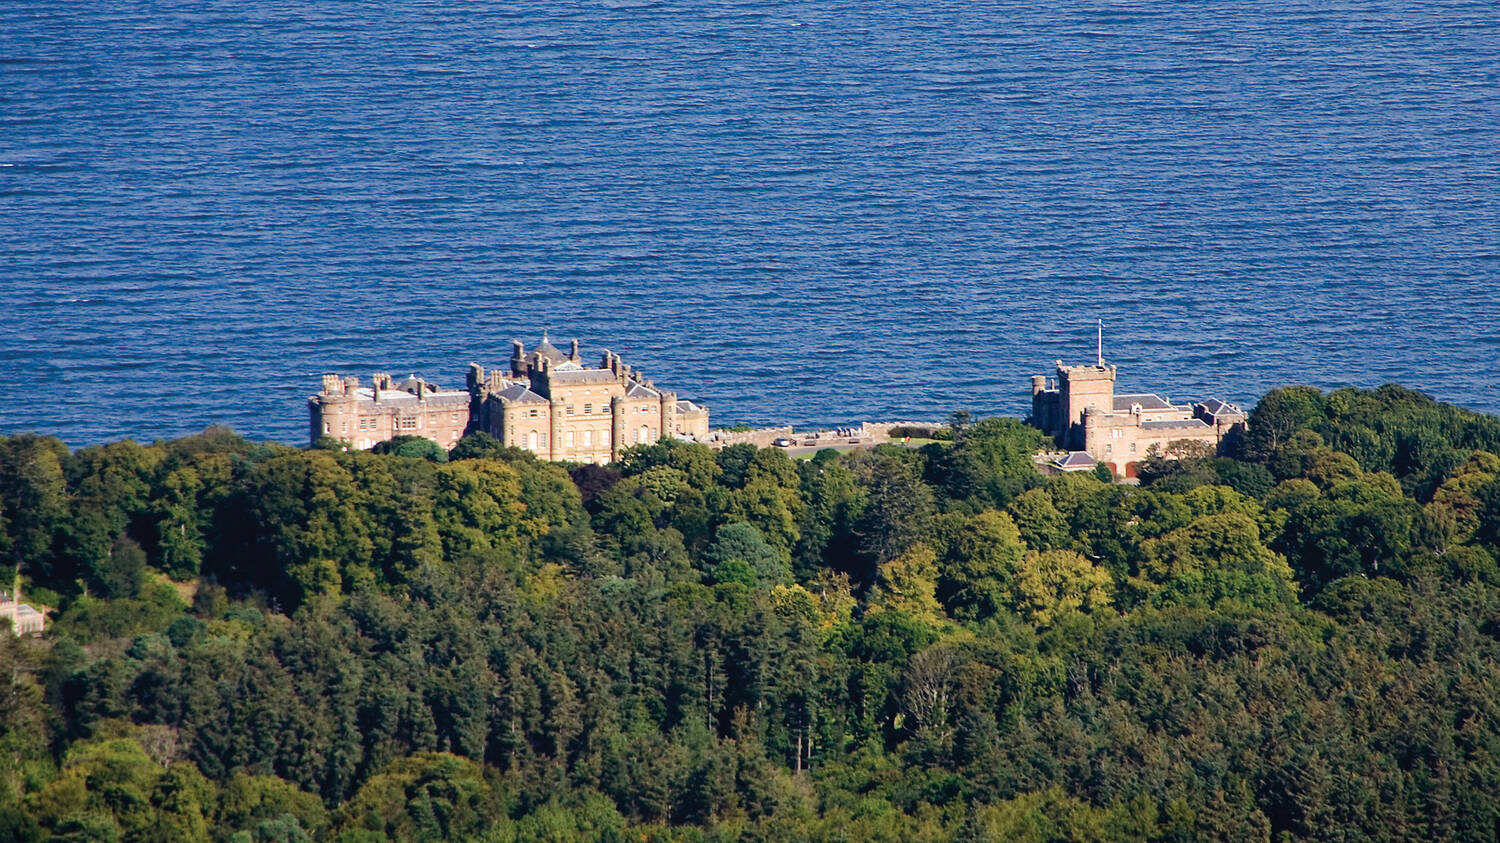 Culzean Castle overlooking the sea